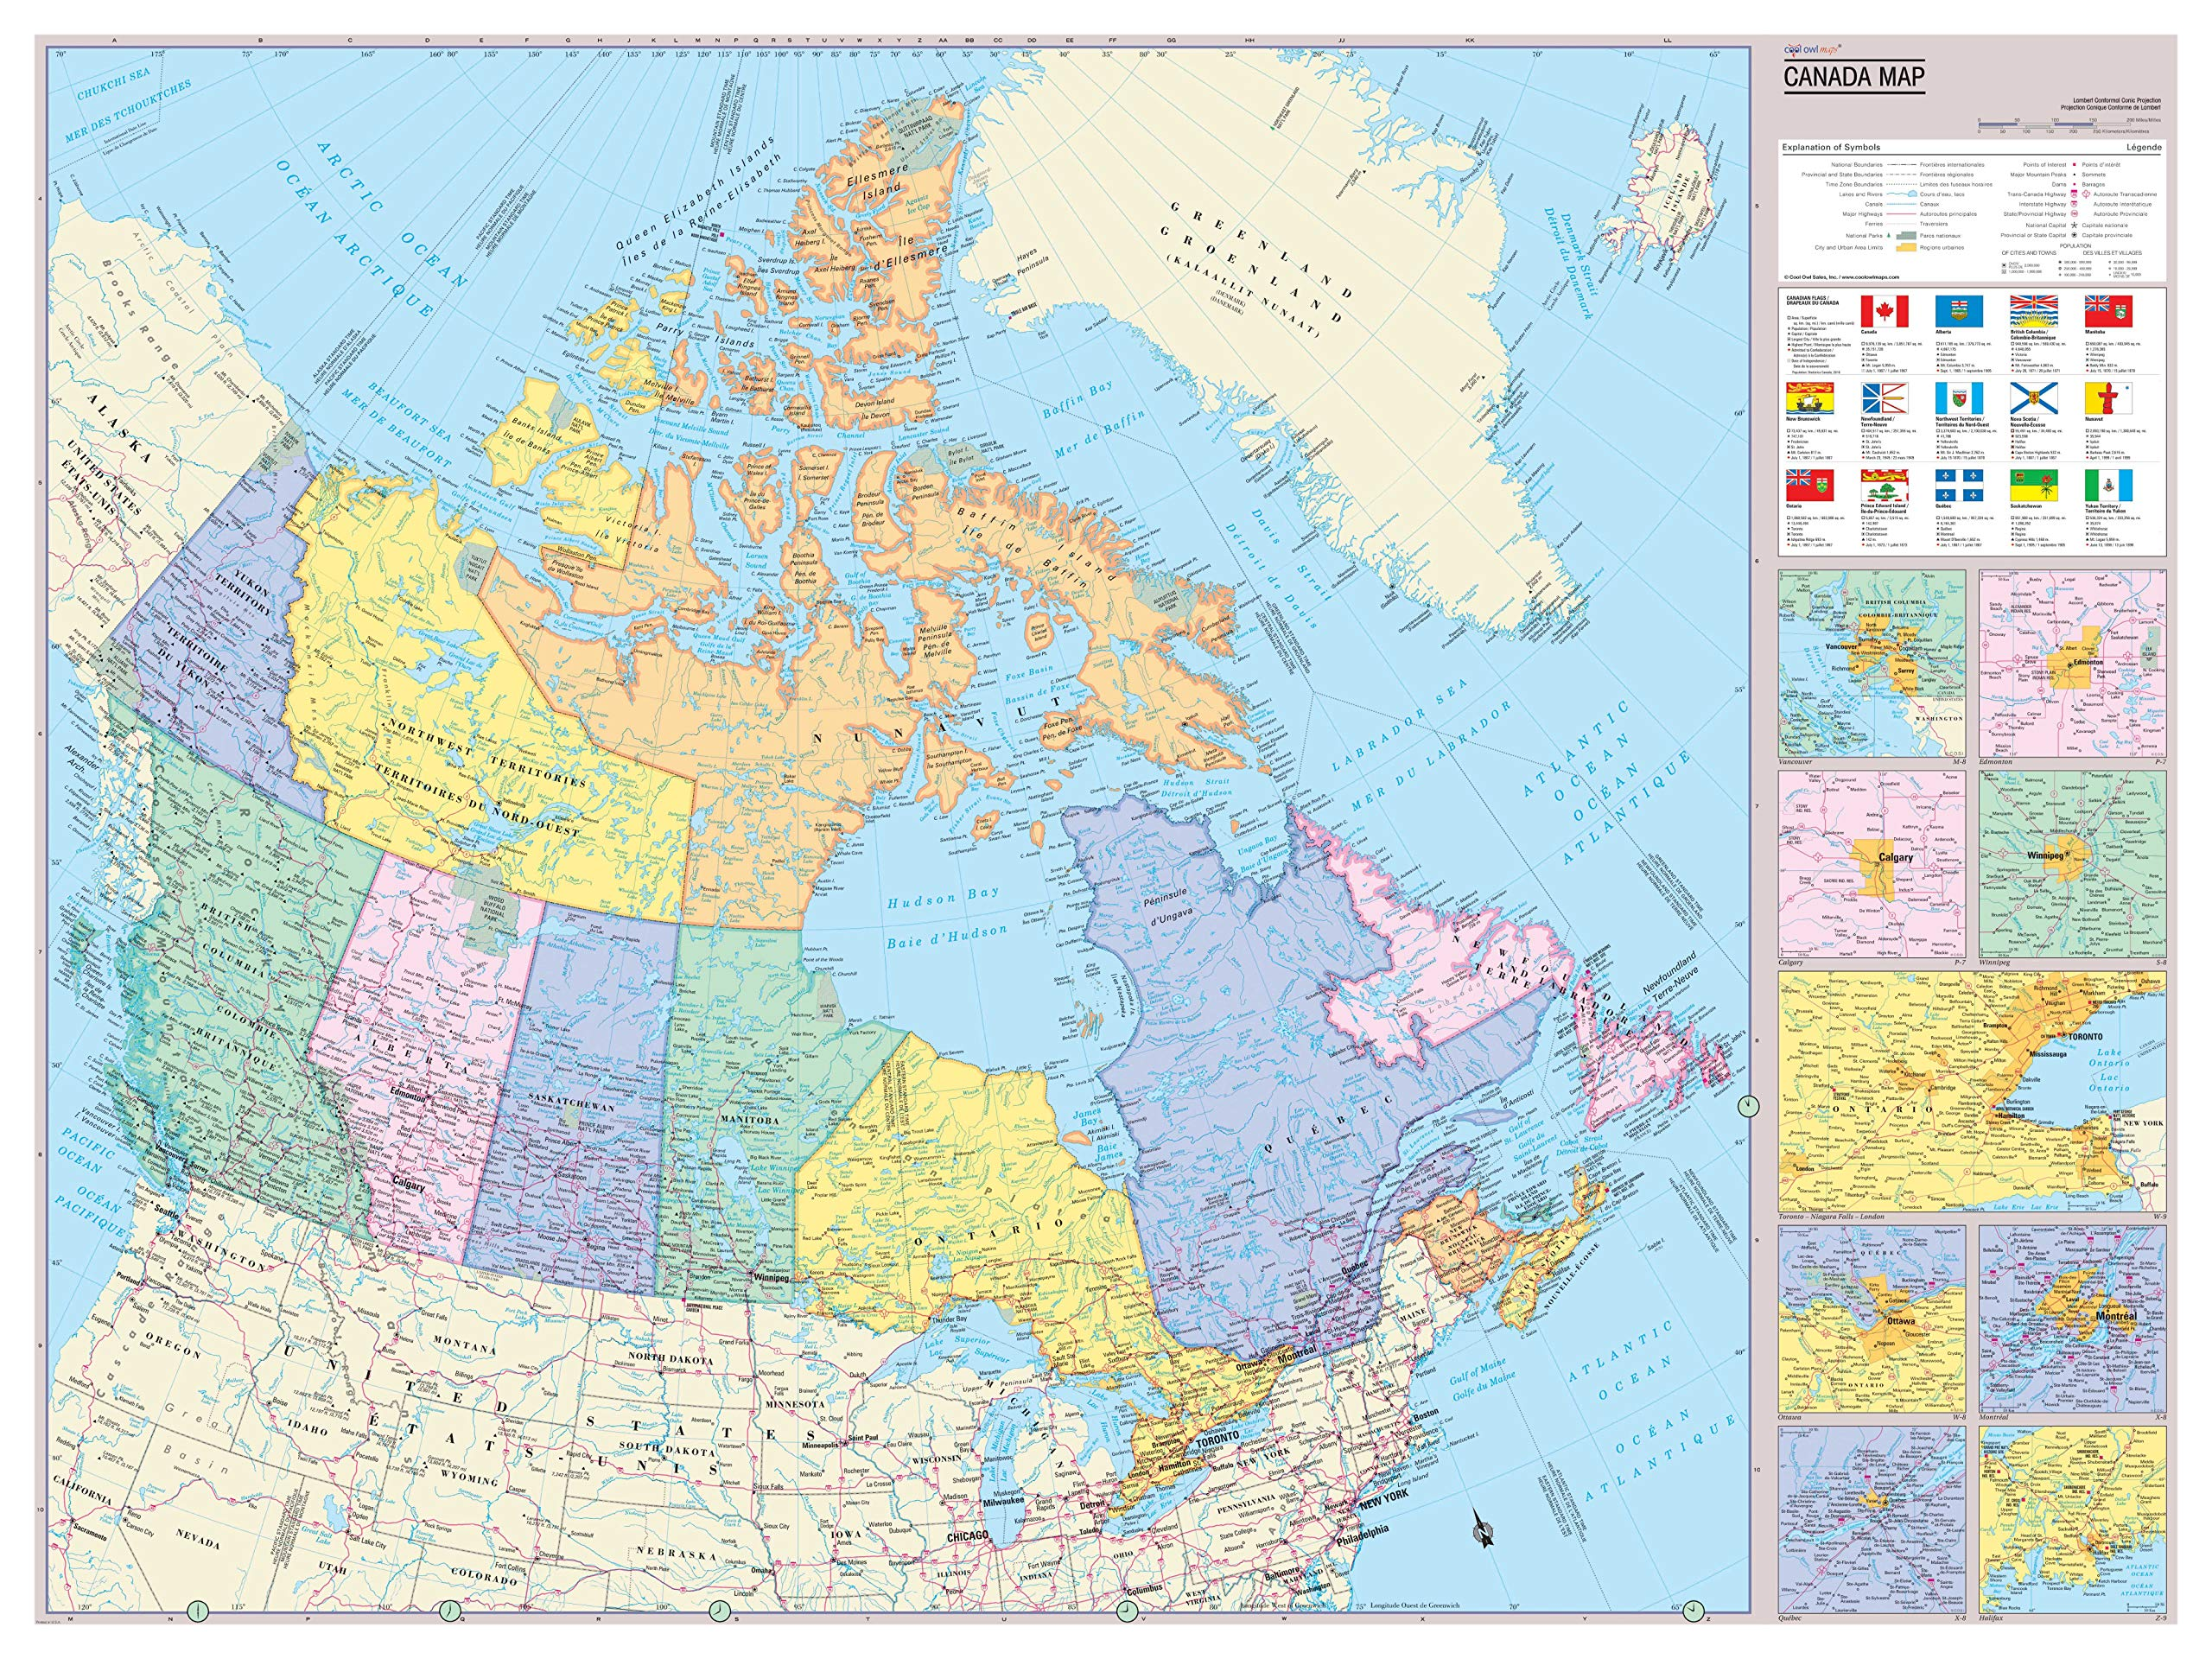 Cool Owl Maps Canada Wall Map Poster (Laminated 32x24)